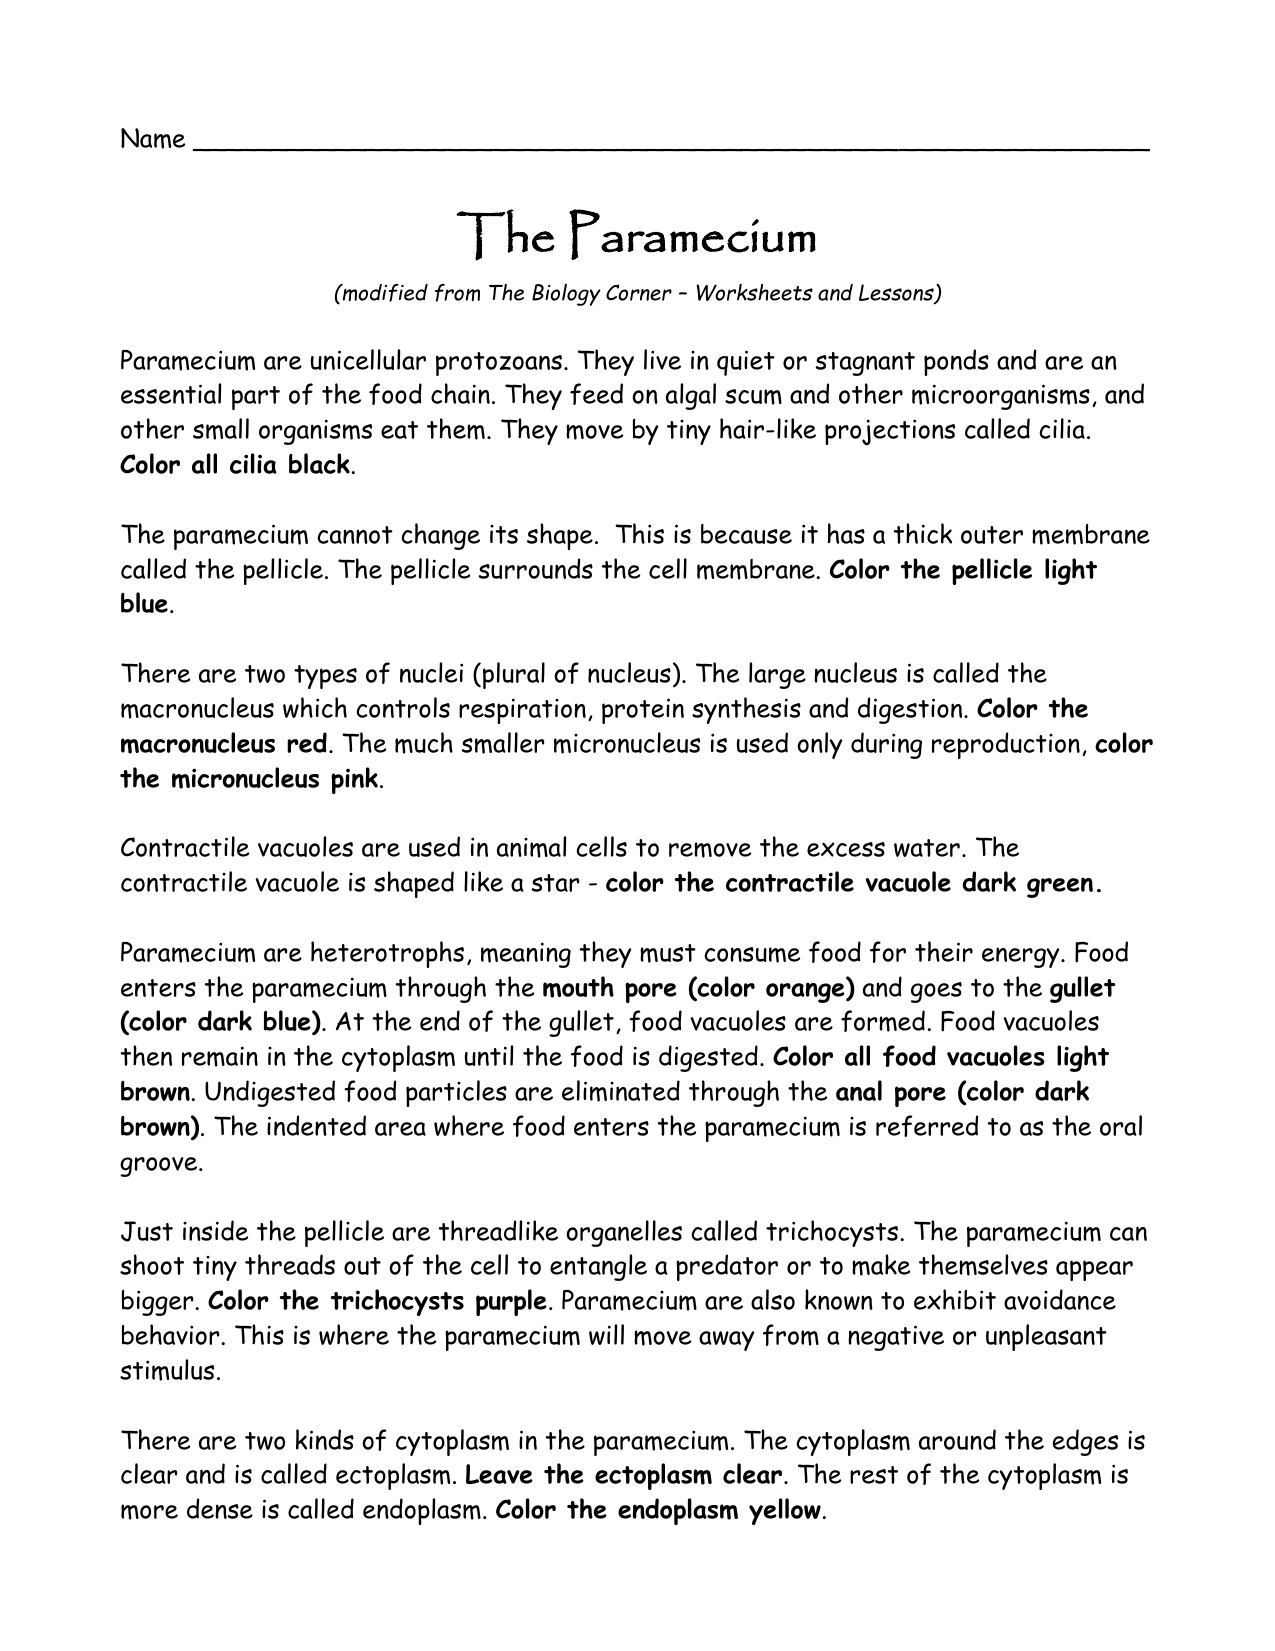 worksheet Biology Corner Worksheets paramecium worksheet